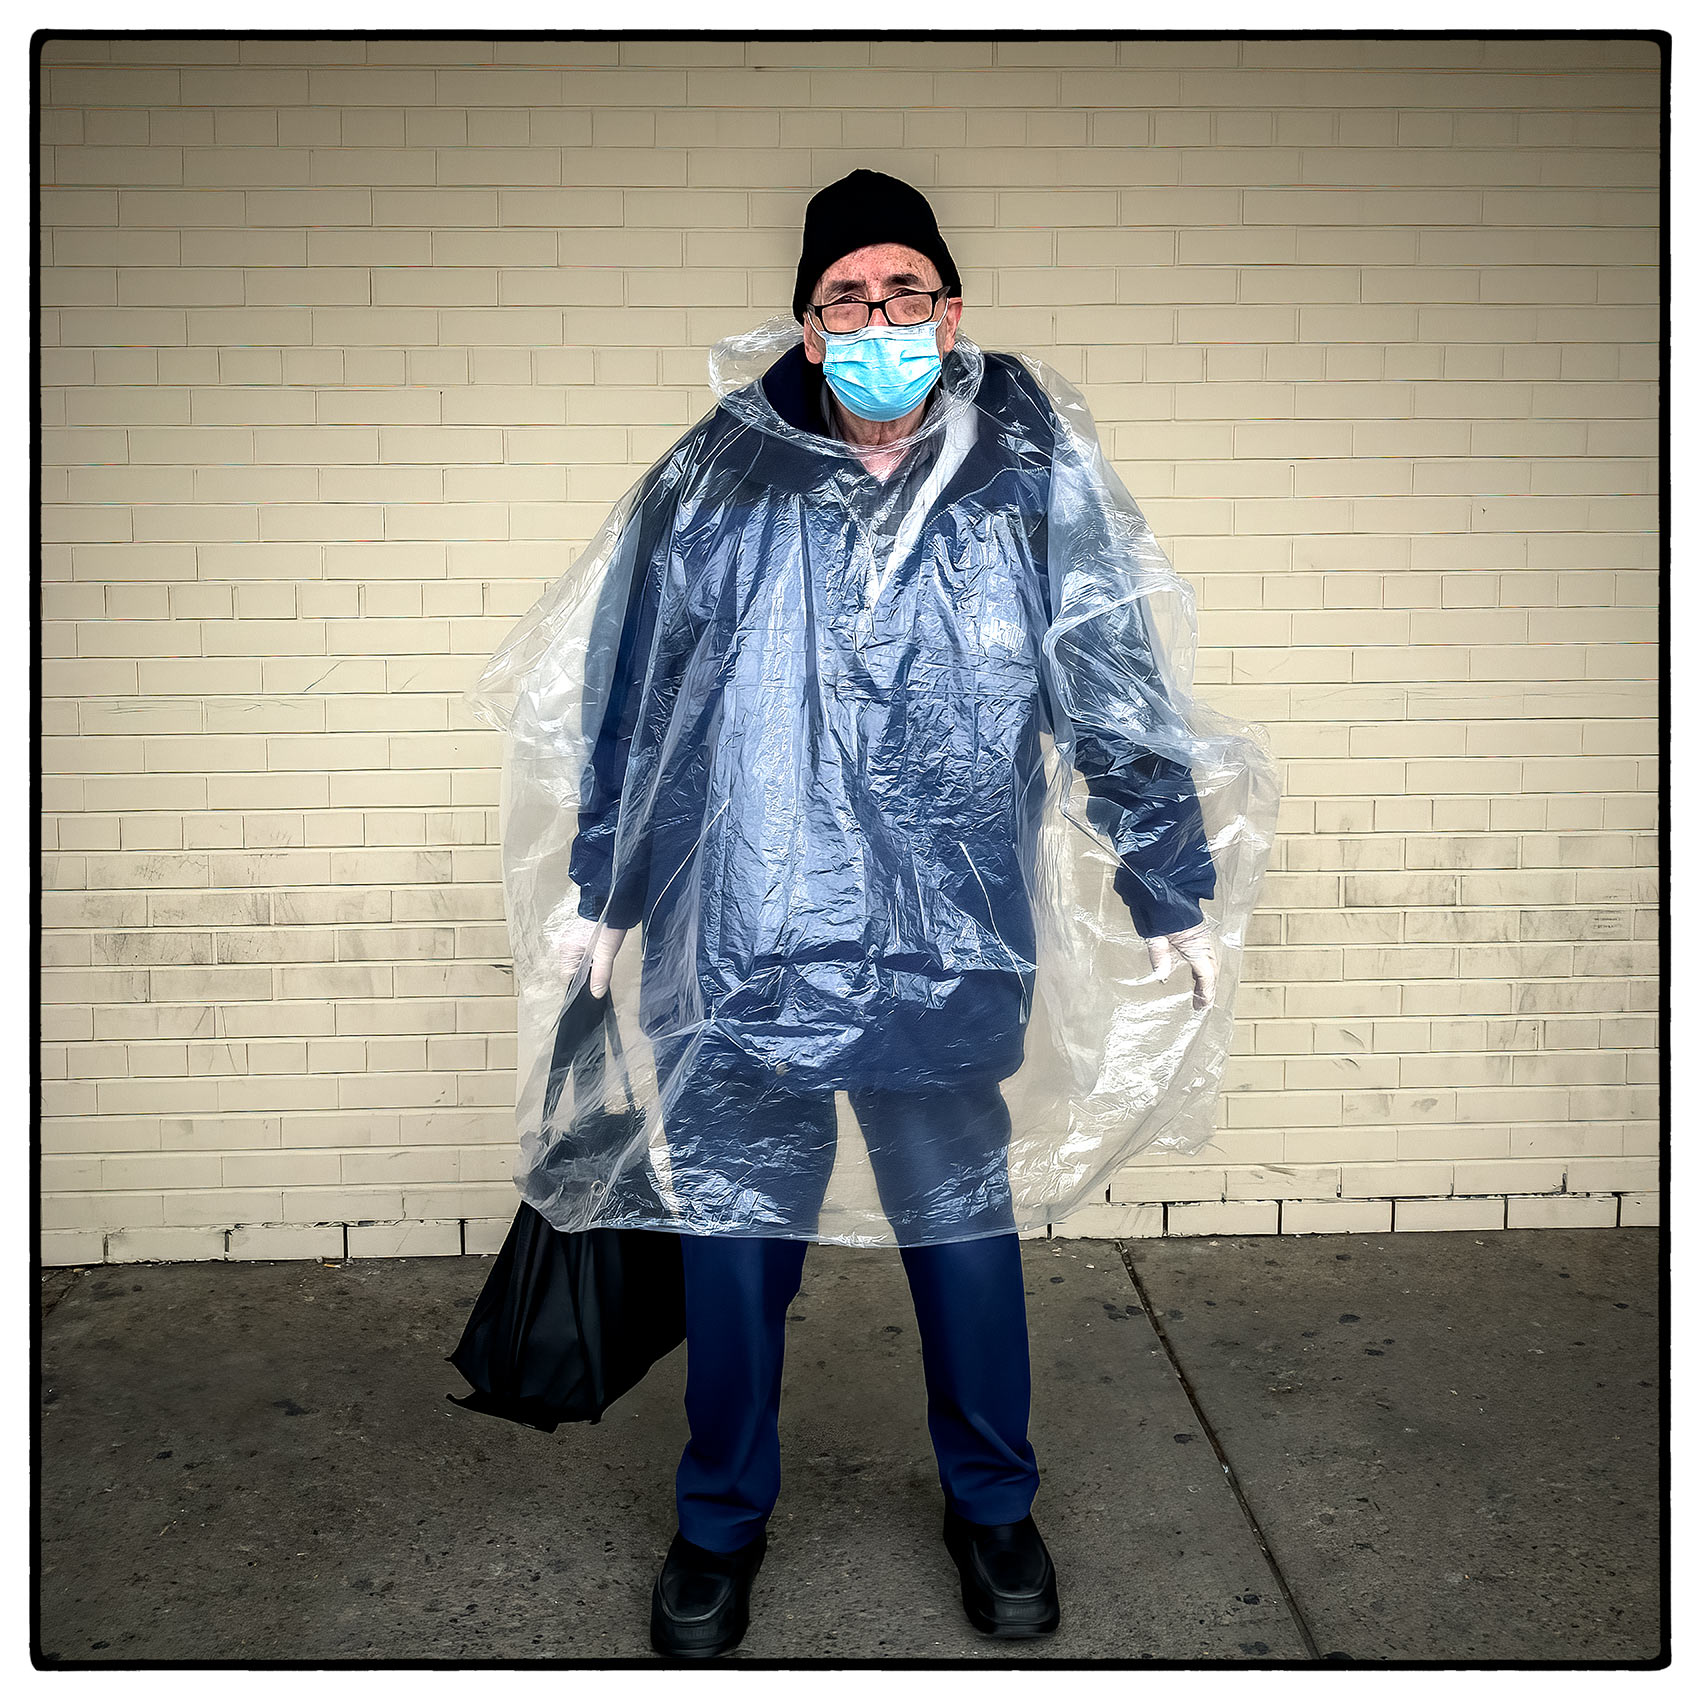 an-elderly-shopper-wears-a-plastic-bag-for-protection-from-covid-19